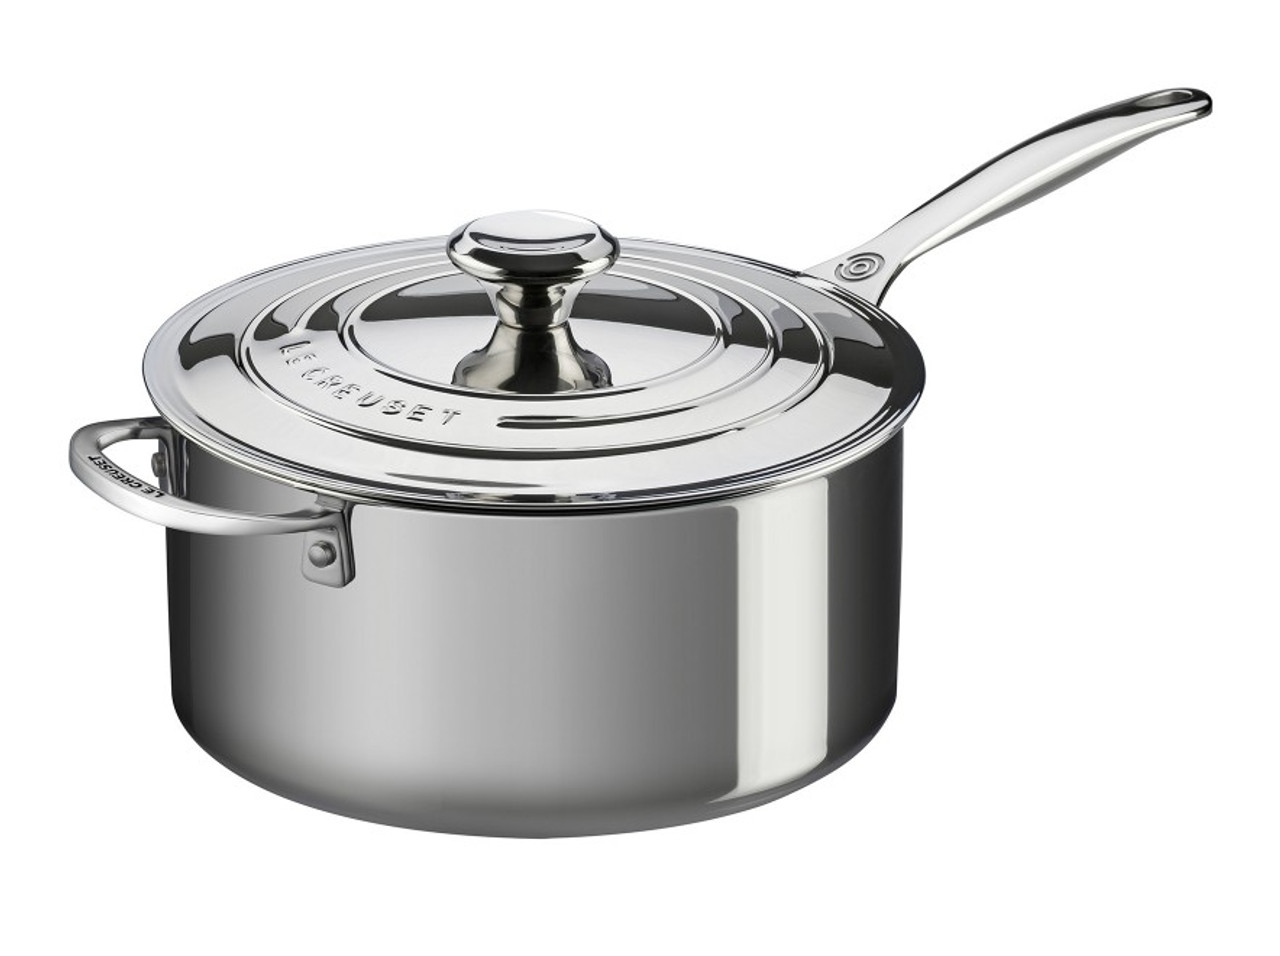 LE CREUSET TRI-PLY STAINLESS ESSENTIAL PAN 5.3L